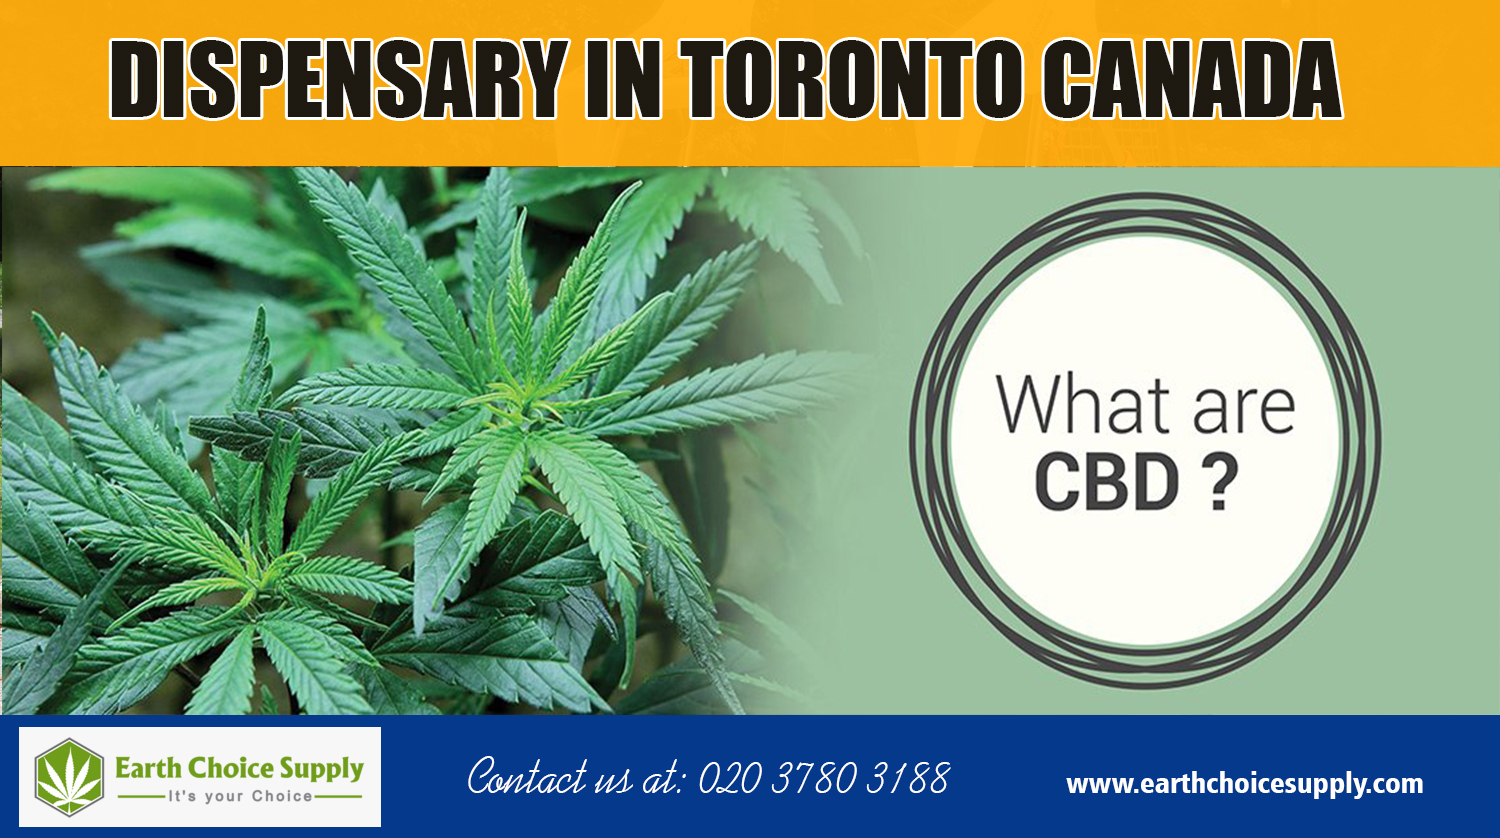 Dispensary in Toronto Canada | Call Us - 416-922-7238 | earthchoicesupply.com